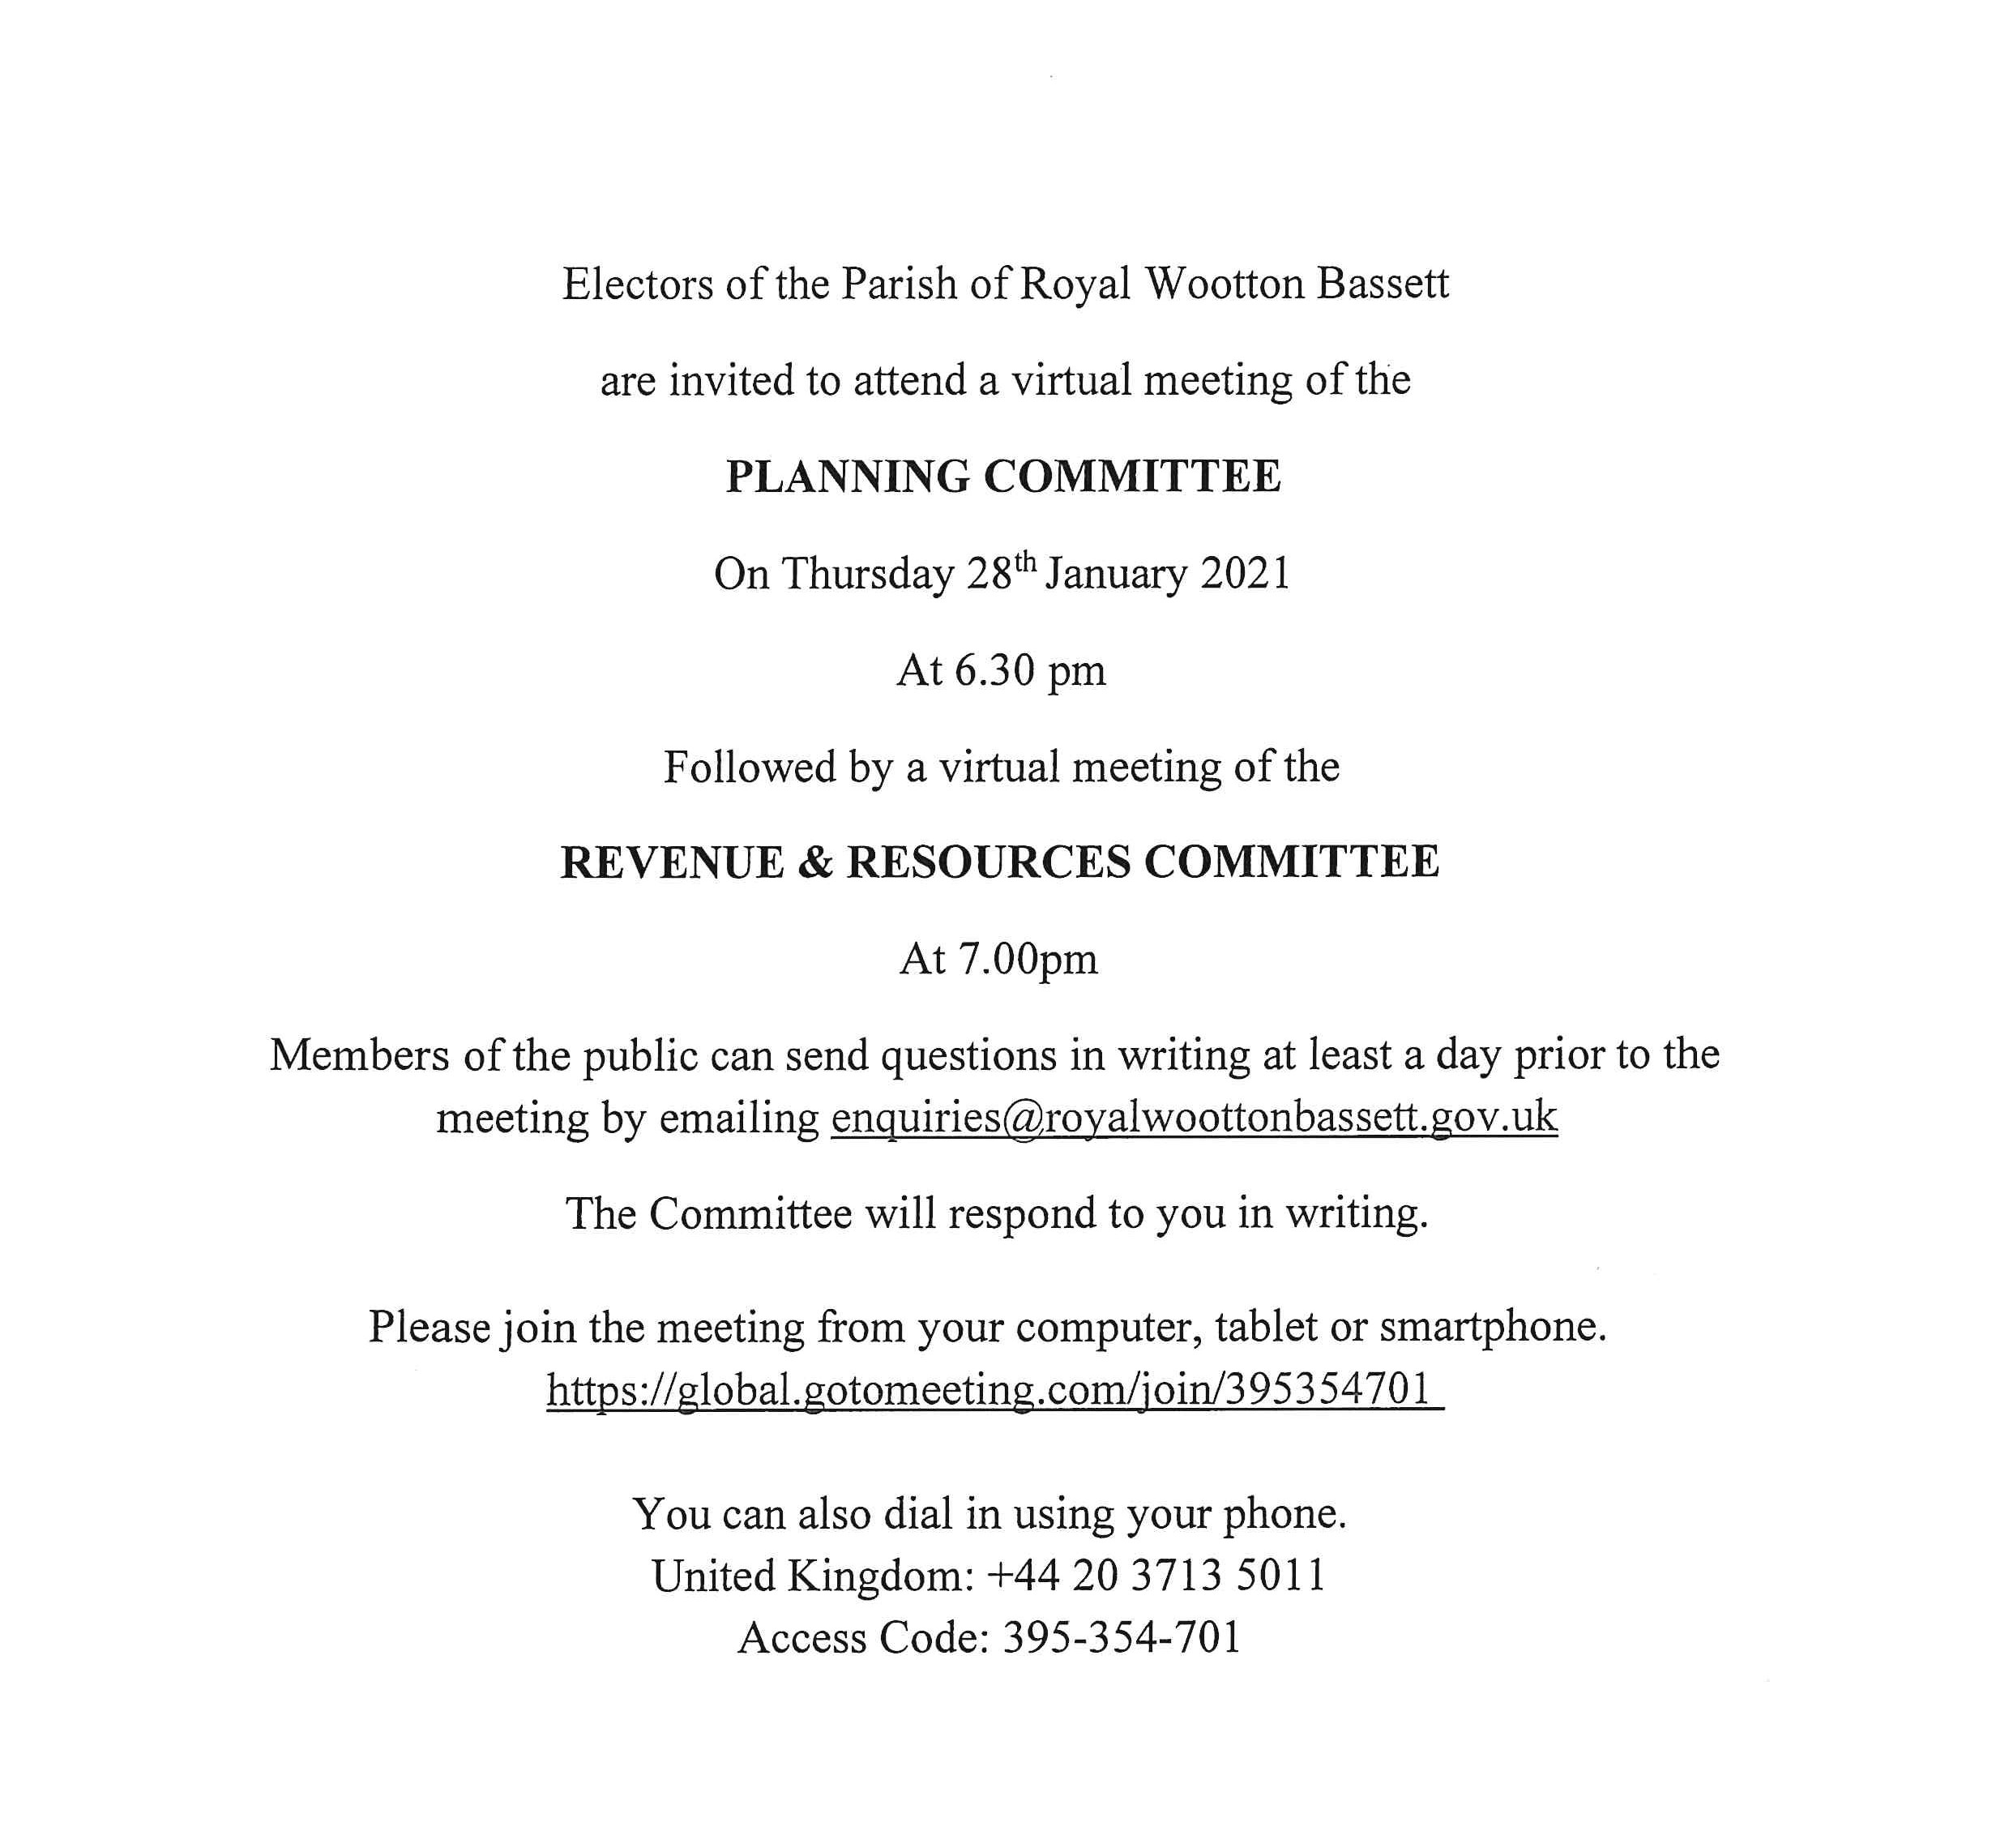 Planning and Revenue and Resources Meetings Notice for Thursday 28th January 2021